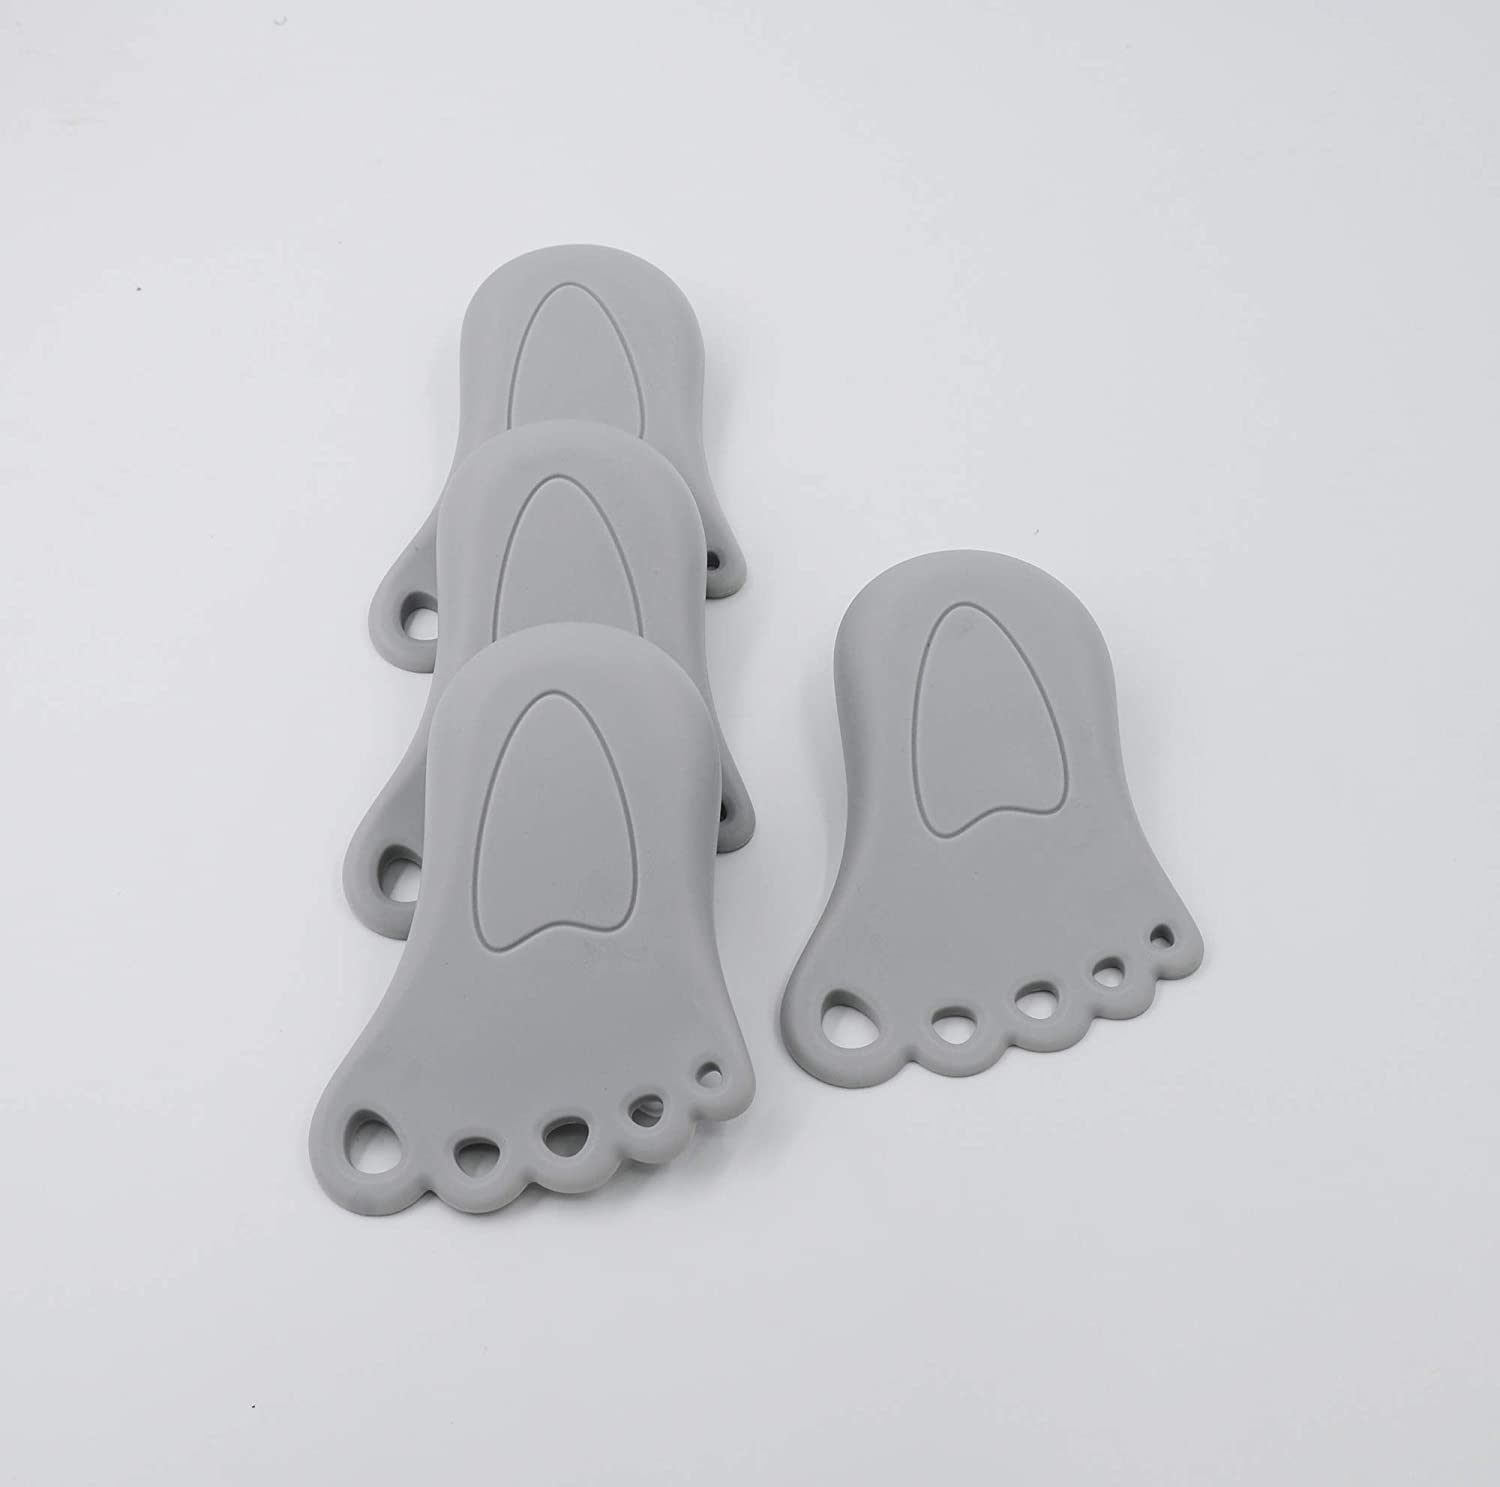 Child Safety Non-Slip Door Stoppers 4 Pack | by THUNDER SCOUT Ideal for Child Safety 100/% Guarantee Odorless and Sturdy